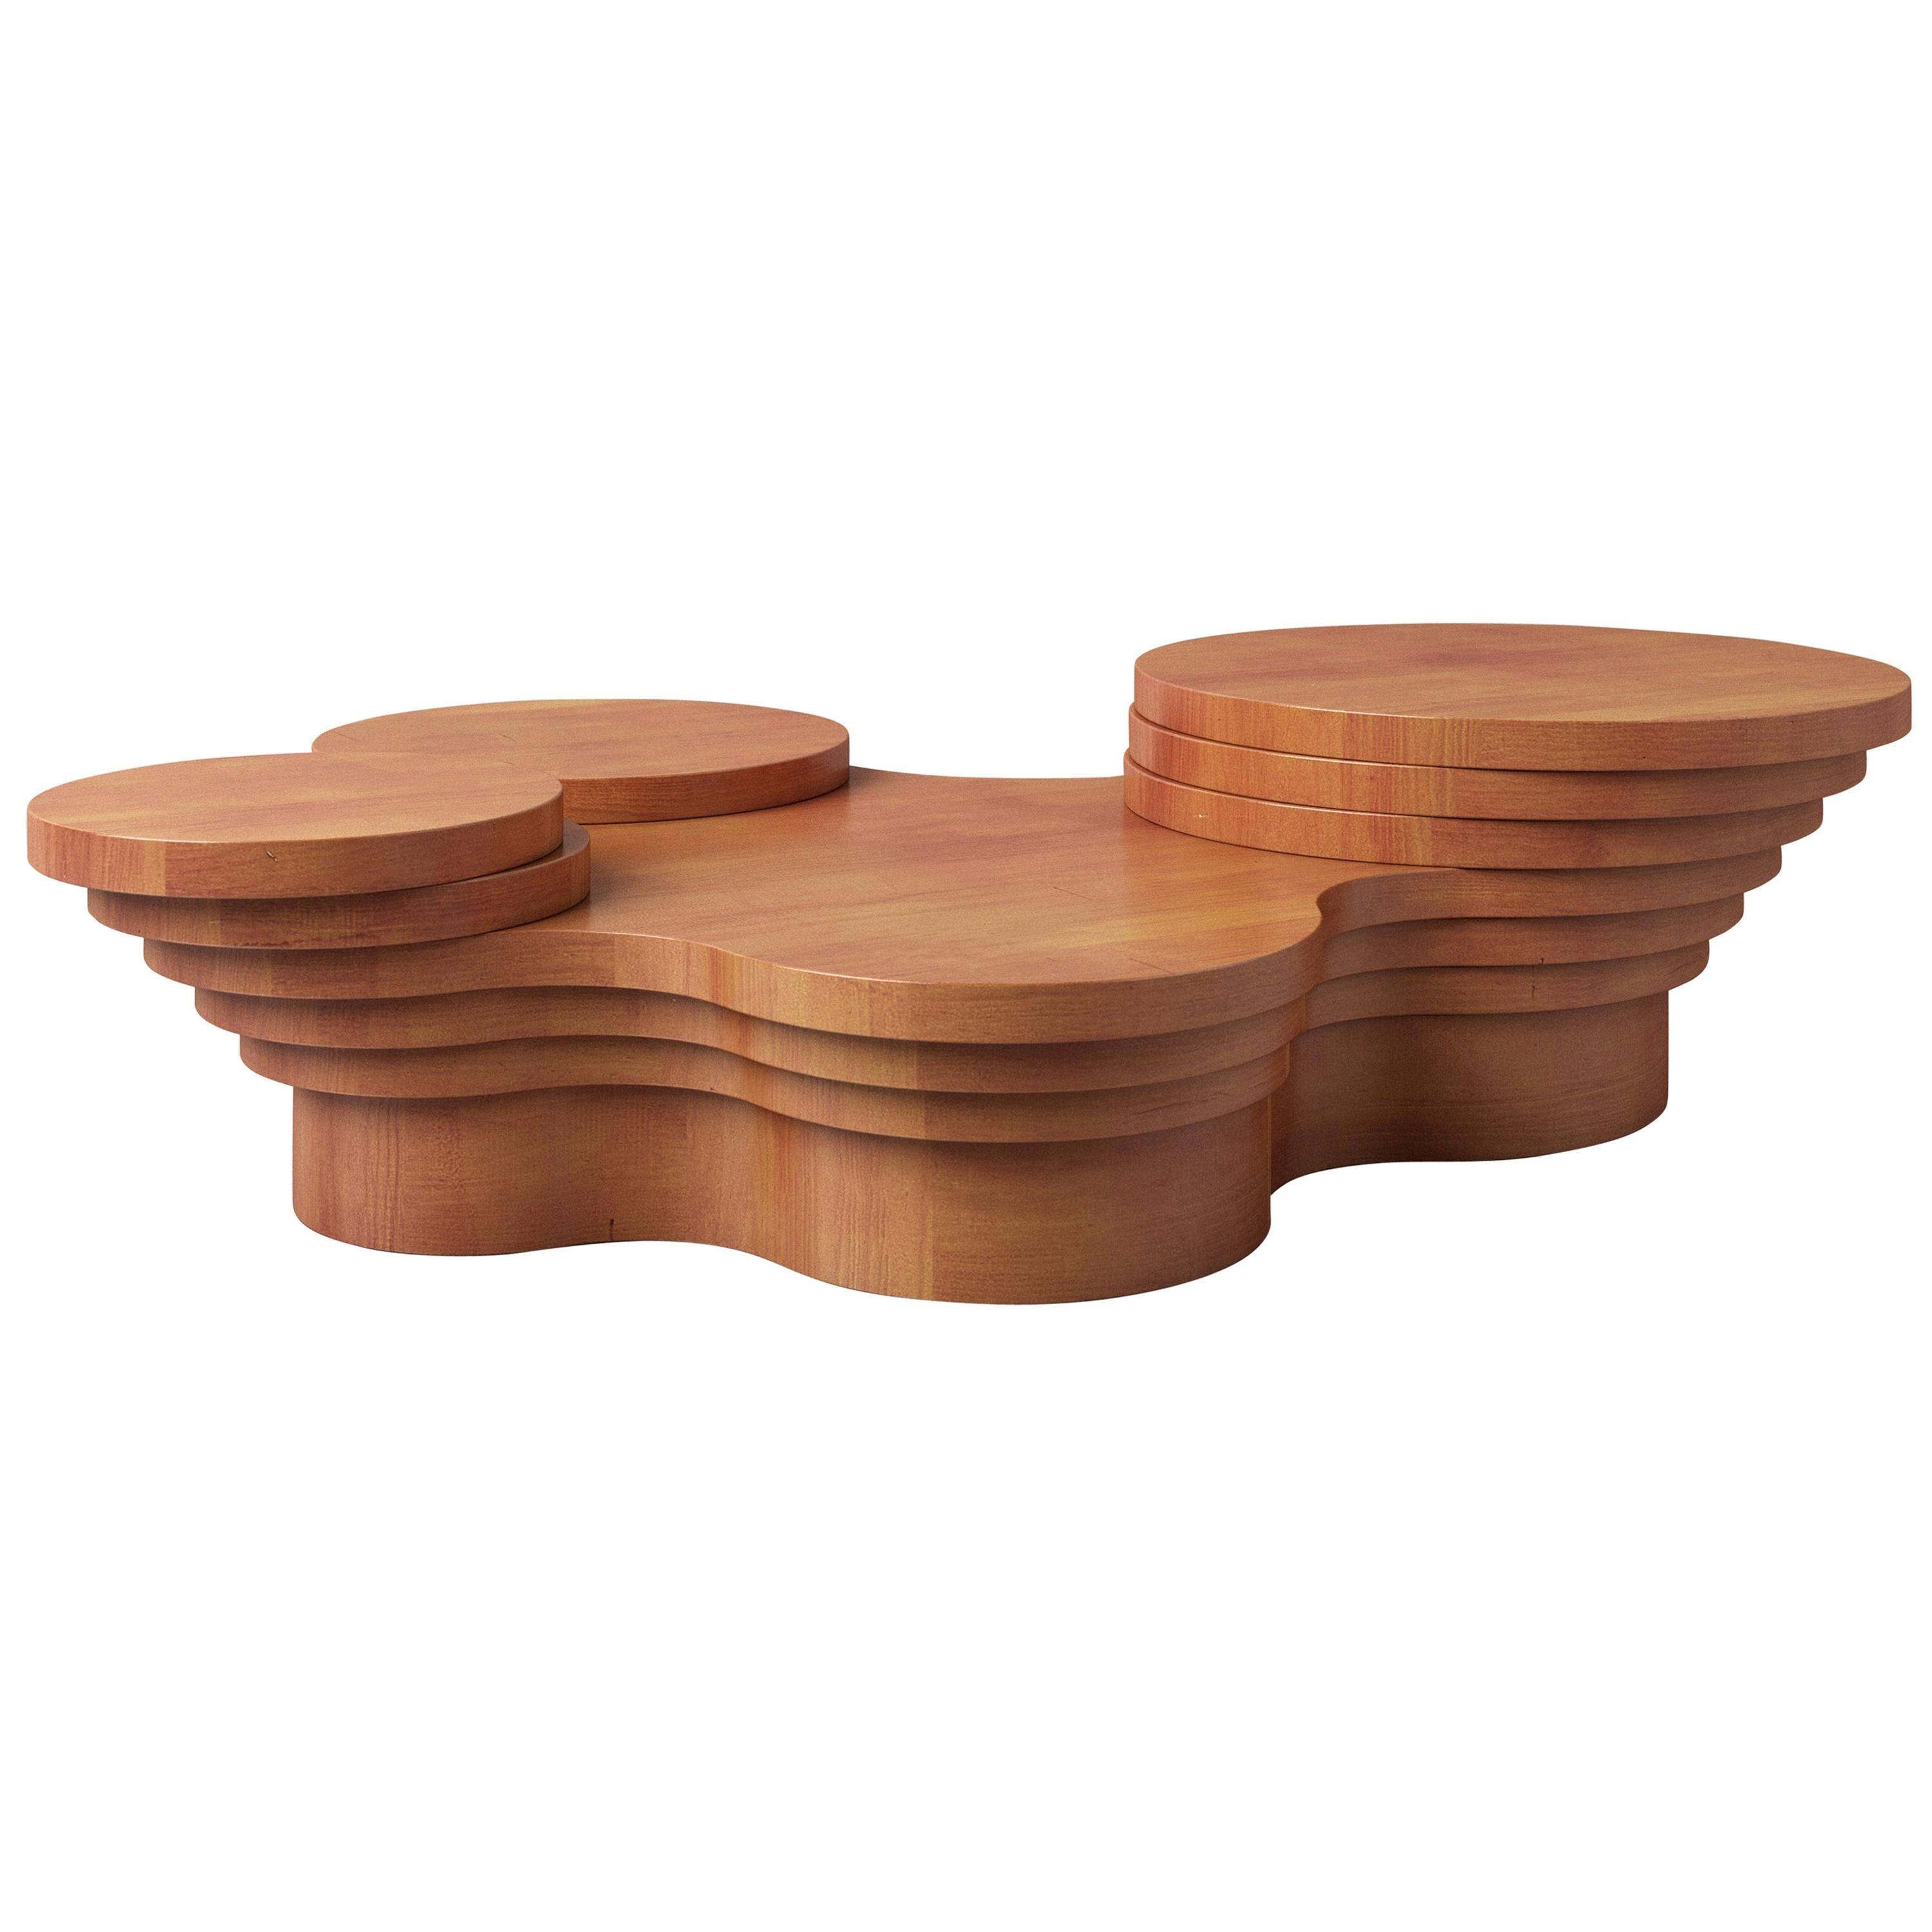 Wood Slice Me Up Sculptural Coffee Table by Pietro Franceschini